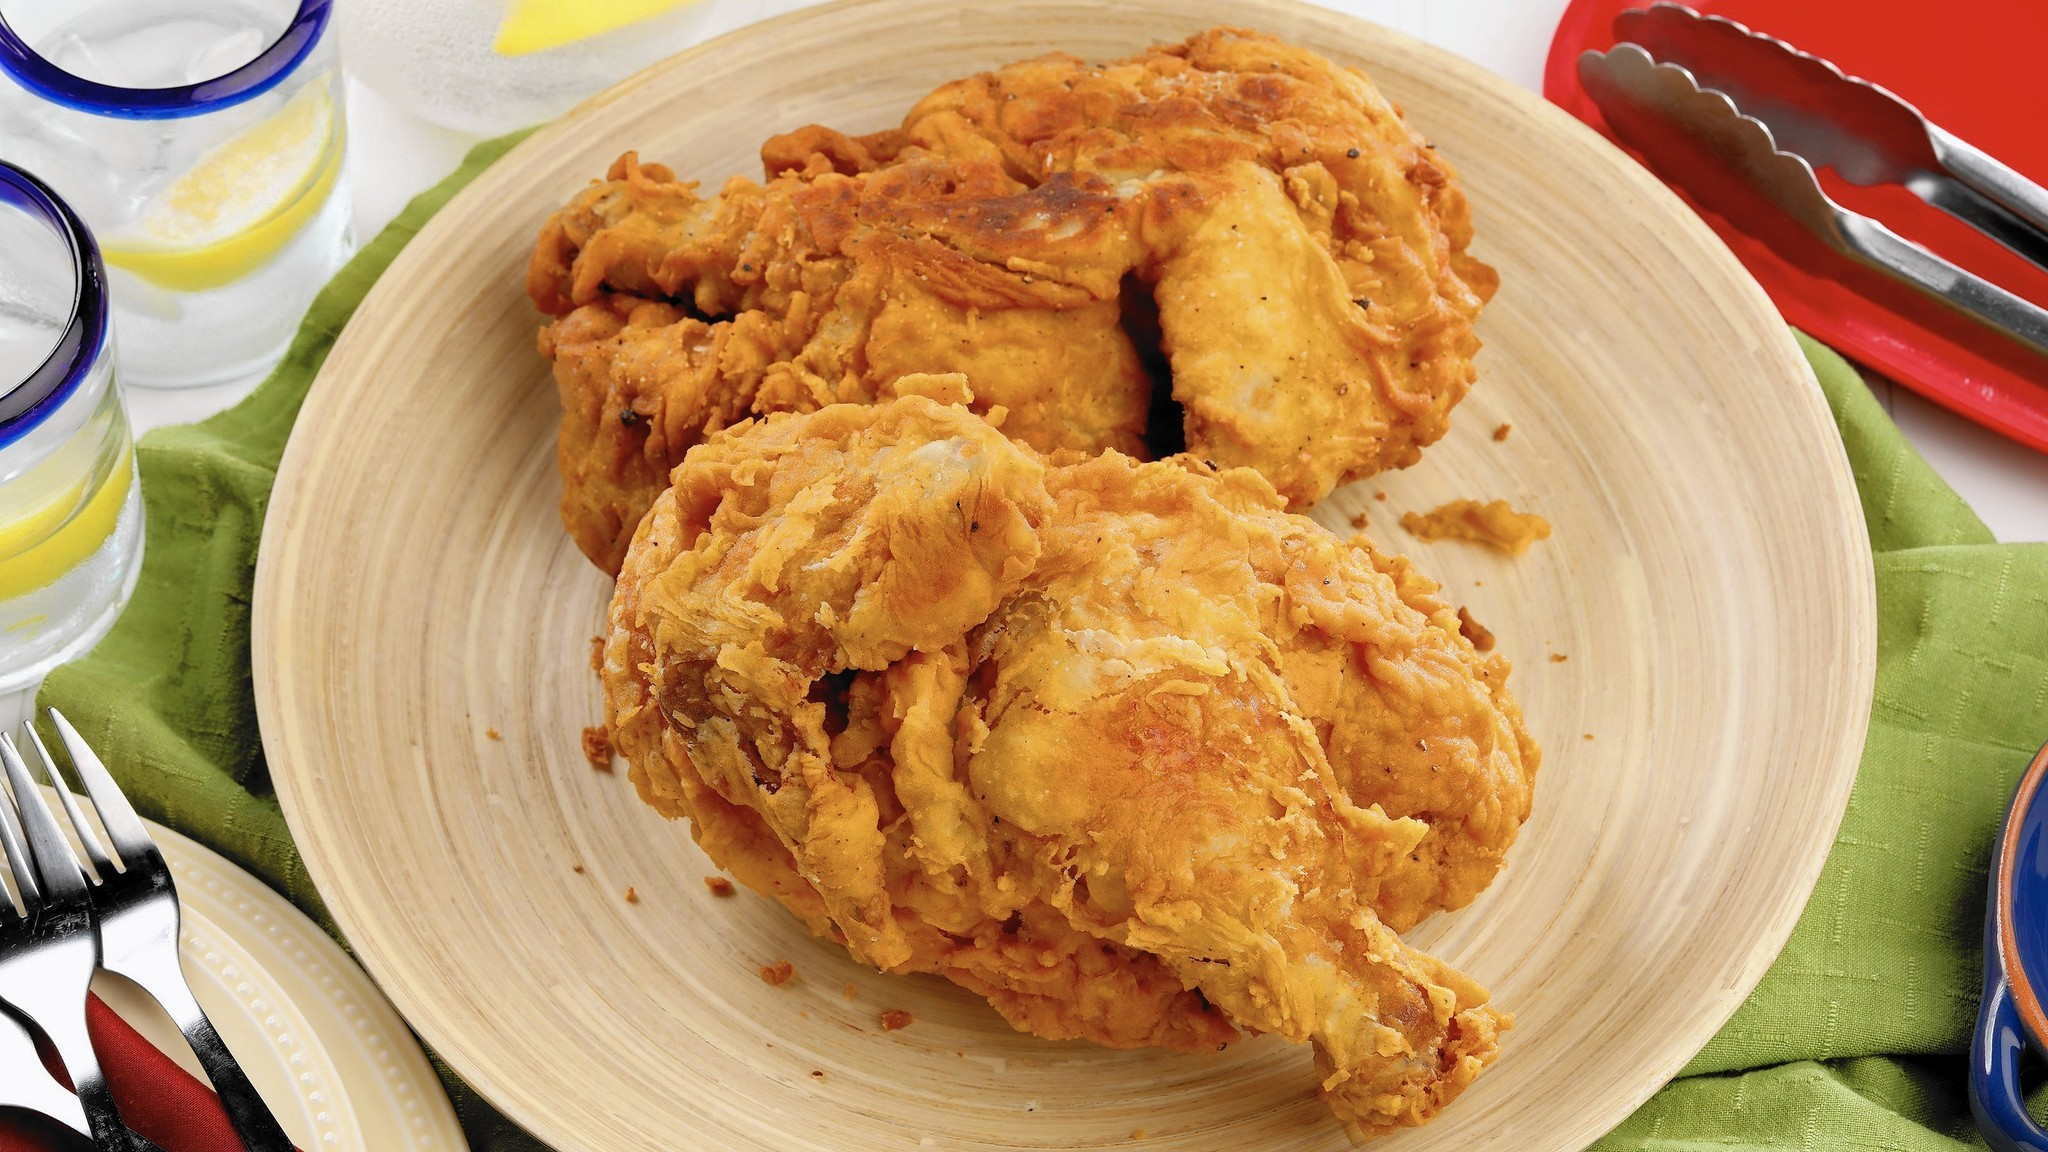 Searching for secret fried chicken recipe from defunct Chicago restaurant